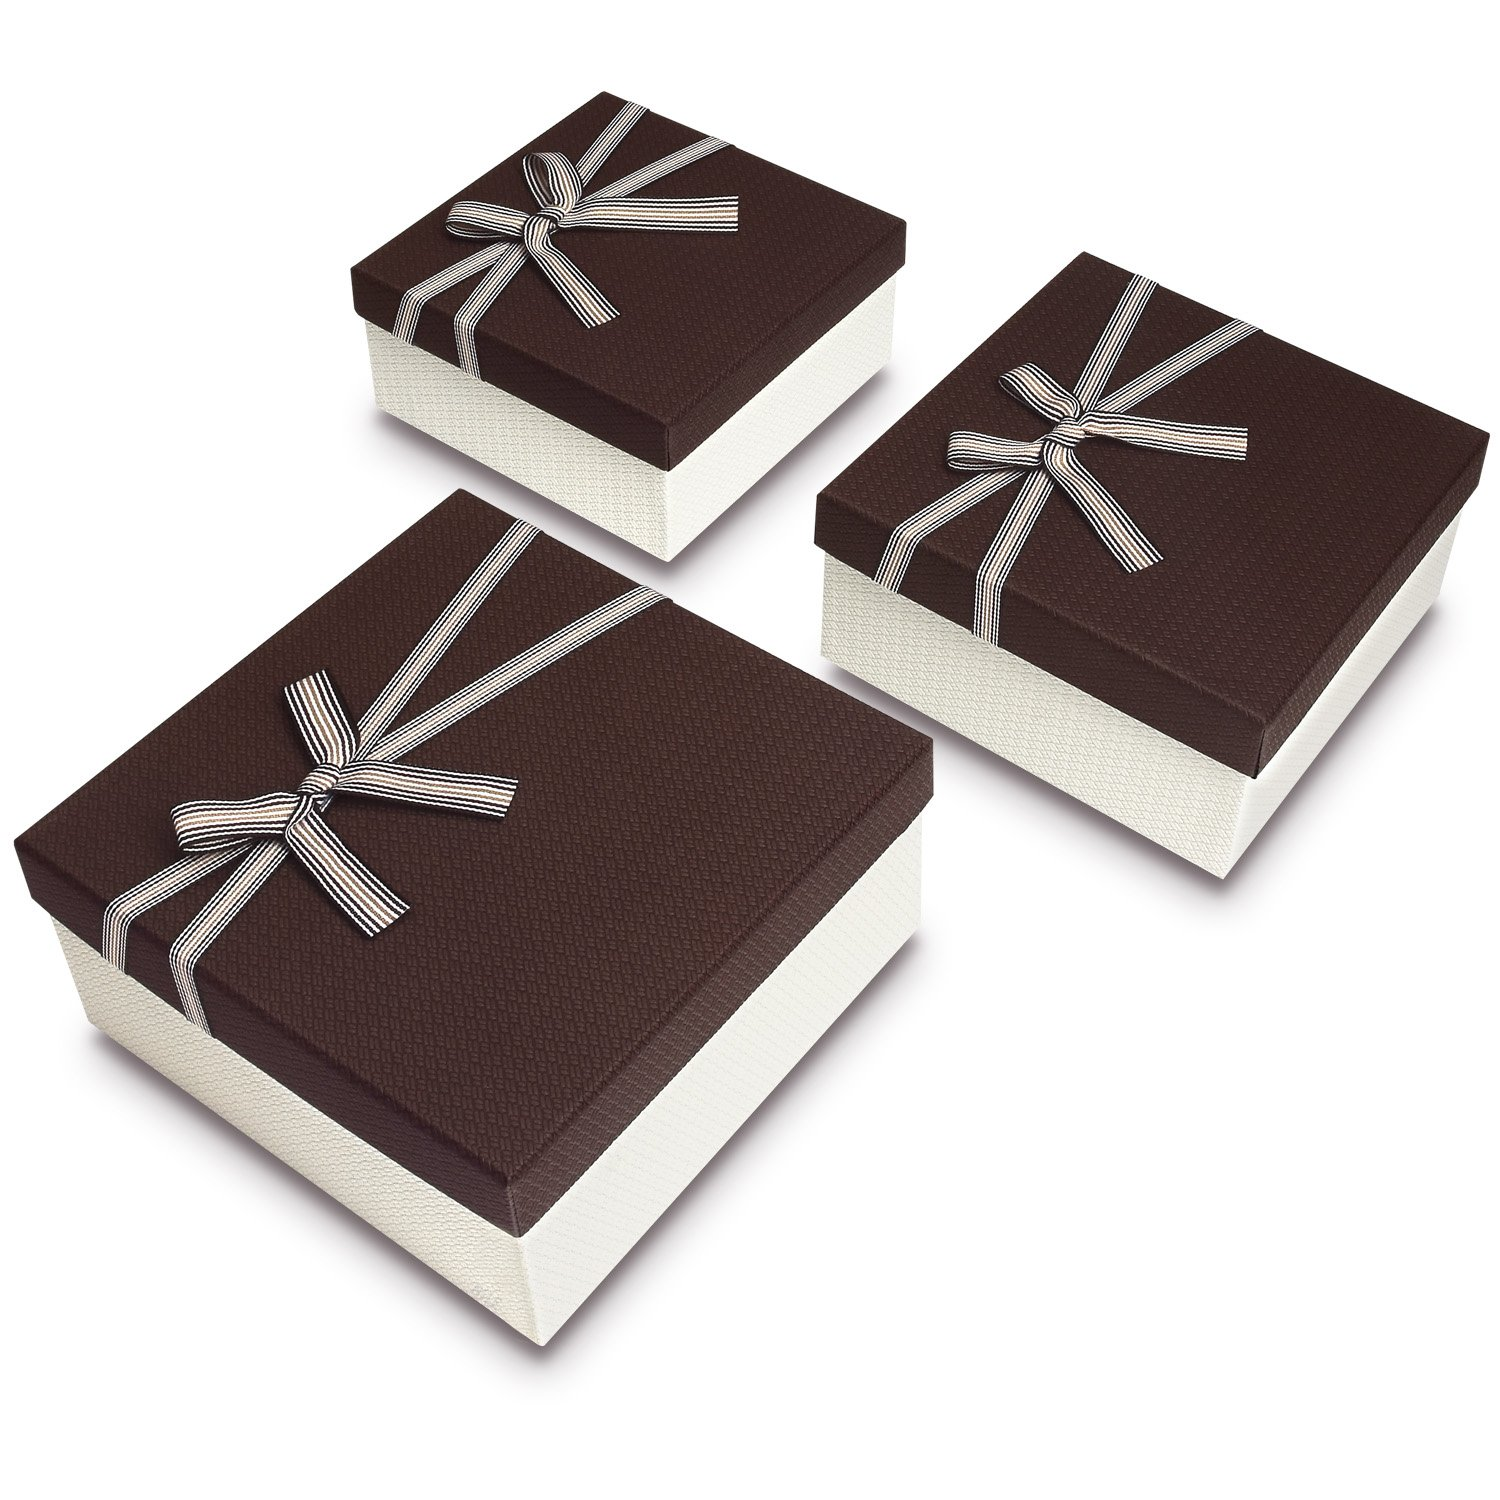 Square Nesting Gift Boxes, A Set of 3,Brown Color with A Bowtie